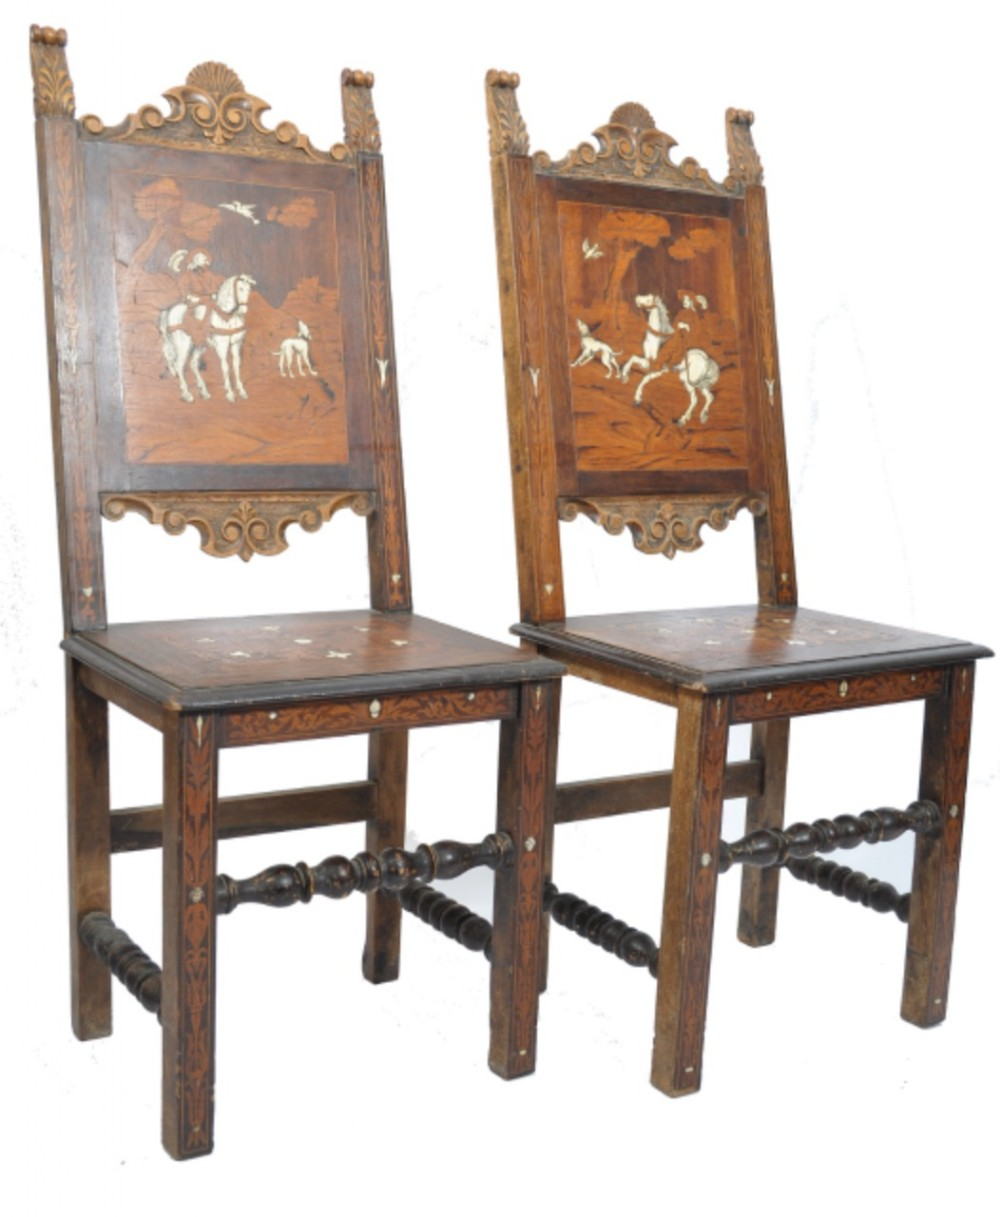 a pair of inlaid italian chairs